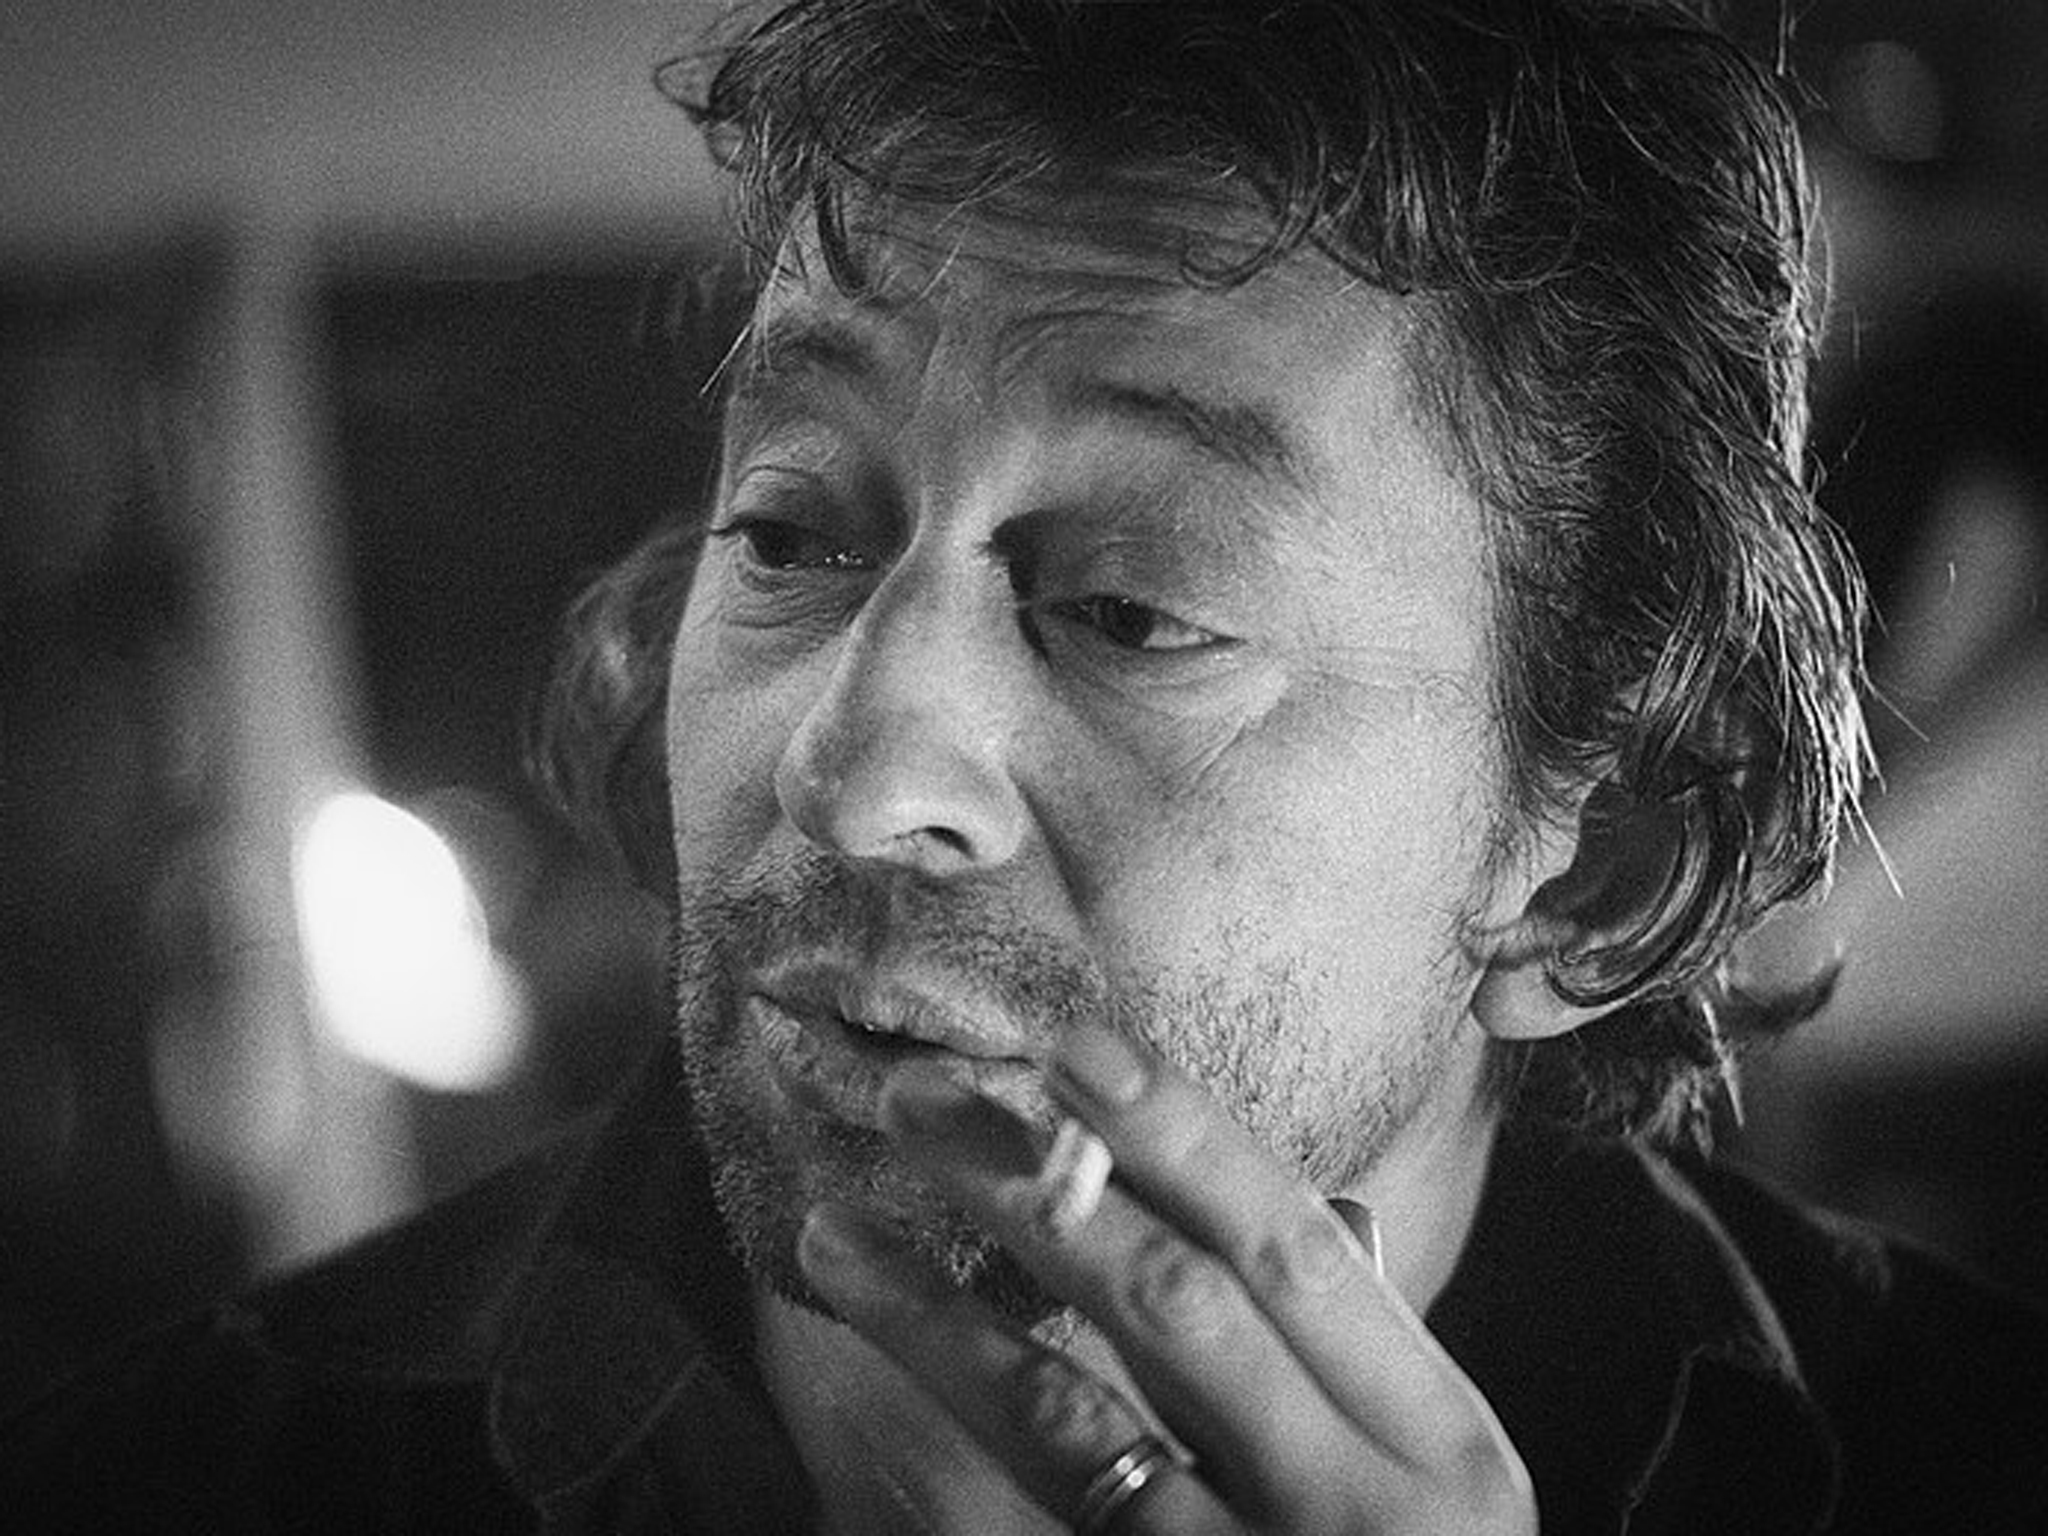 Serge Gainsbourg in 1981